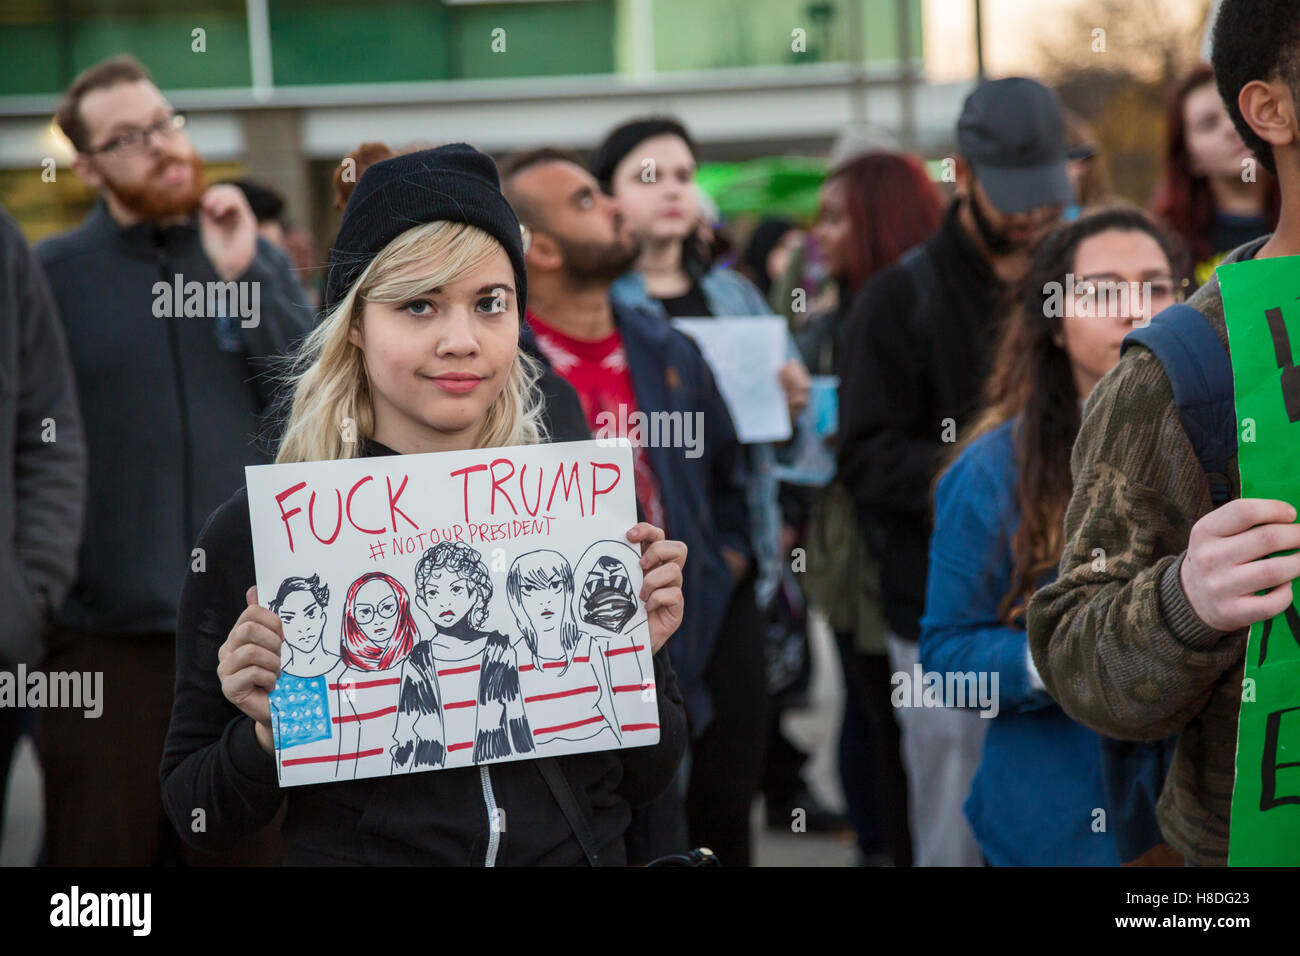 Detroit, Michigan, USA. 10th November, 2016. Students at Wayne State University protest the election of Donald Trump - Stock Image